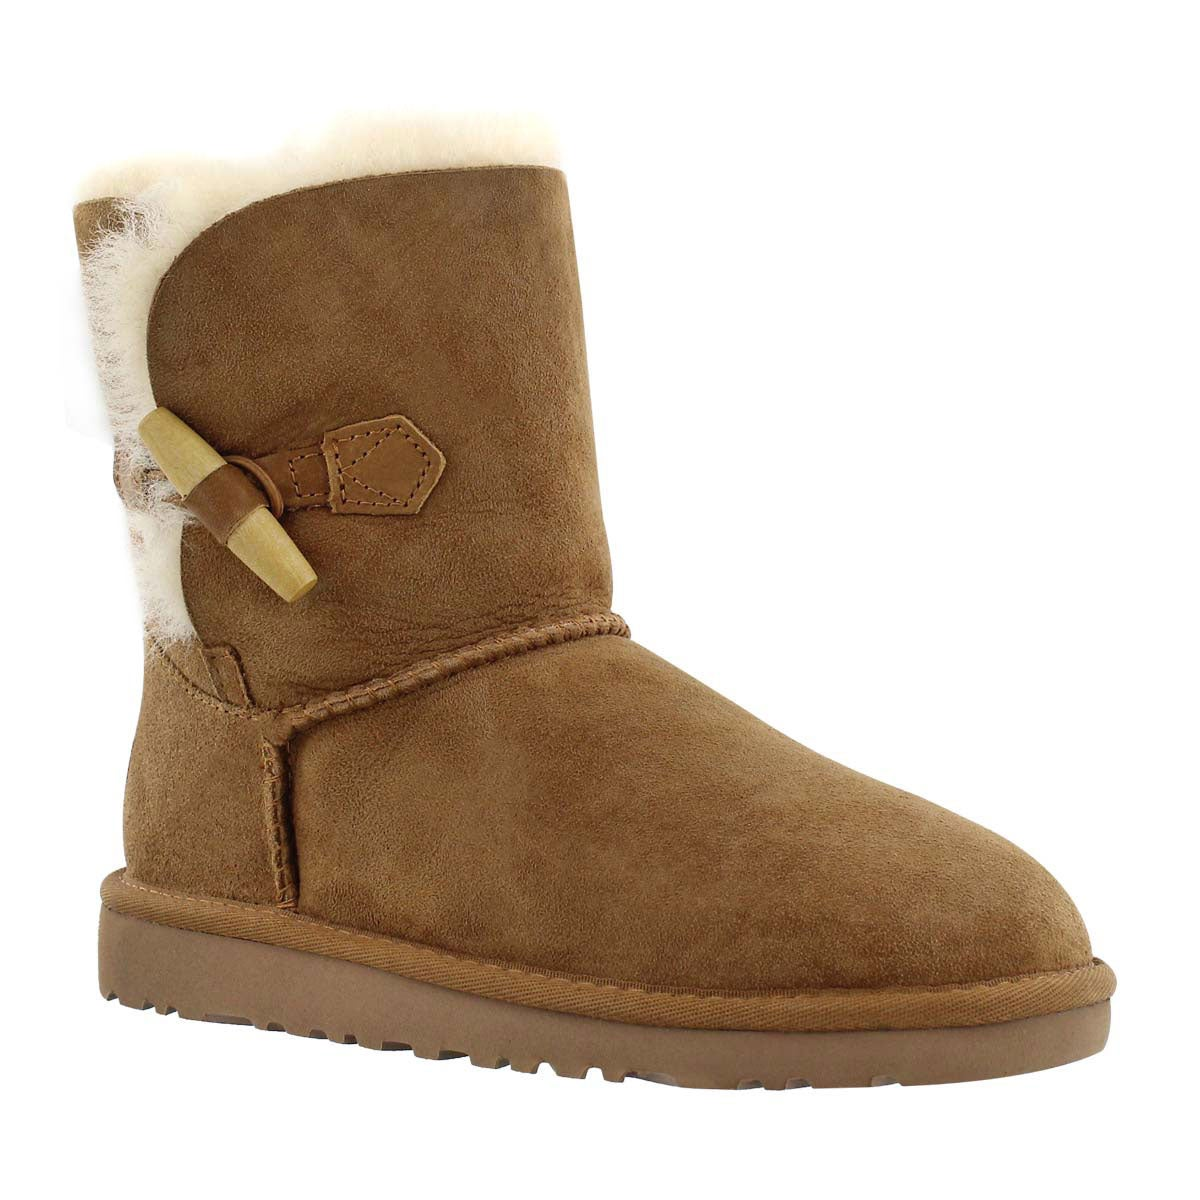 Girls' EBONY chestnut sheepskin toggle boots